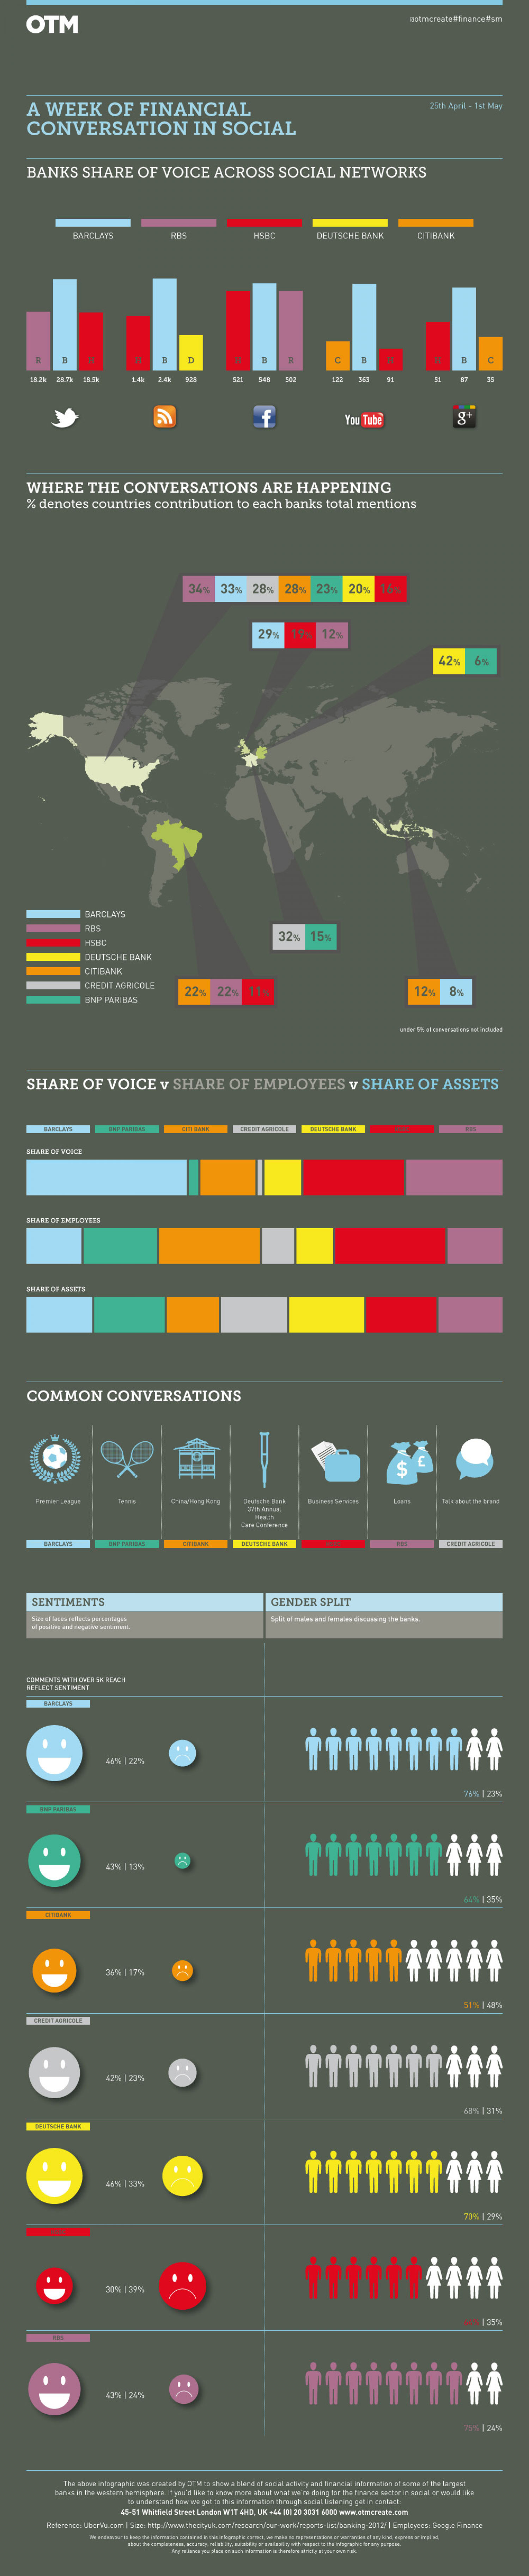 Week of financial conversation in social media Infographic